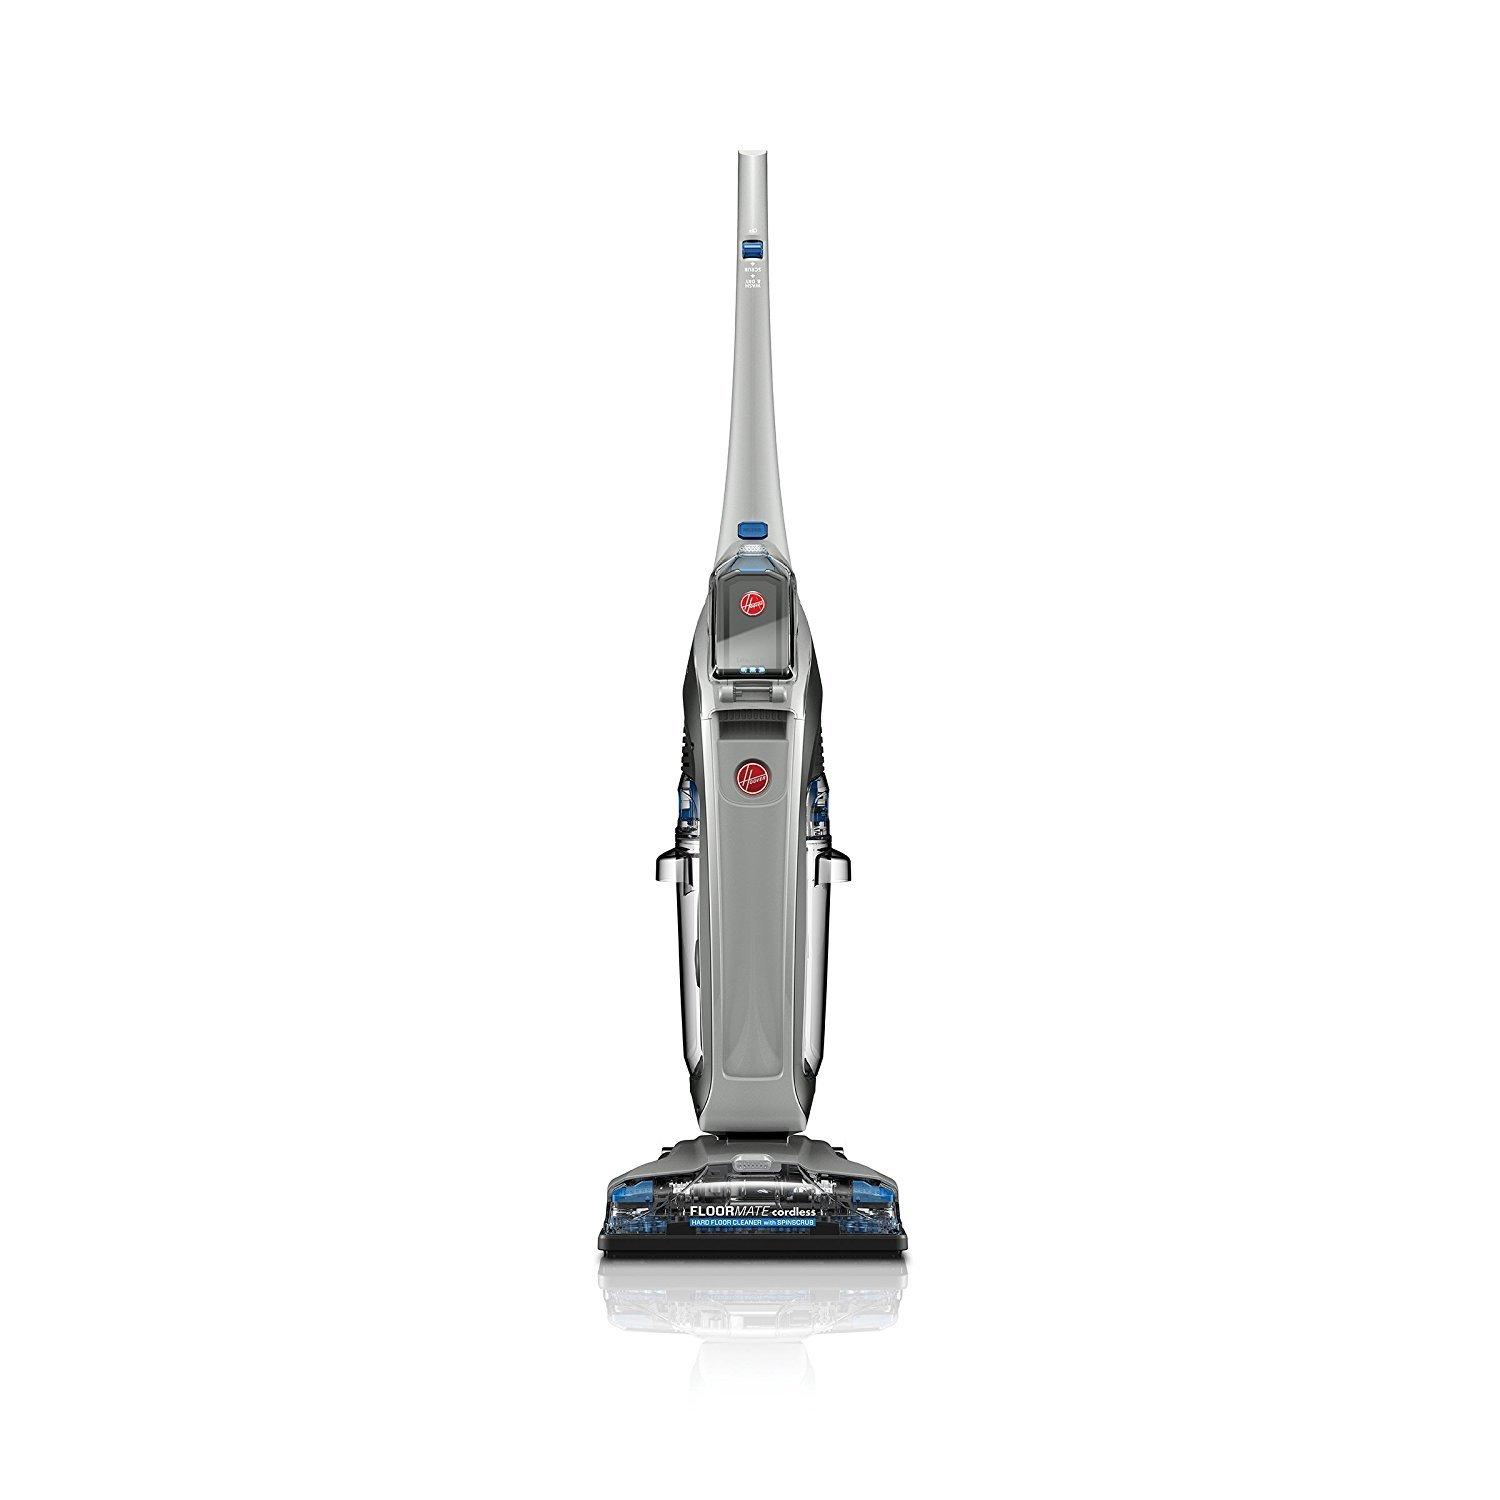 Hoover FloorMate Cordless Hard Floor Cleaner (Batteryand Charger Not Included)